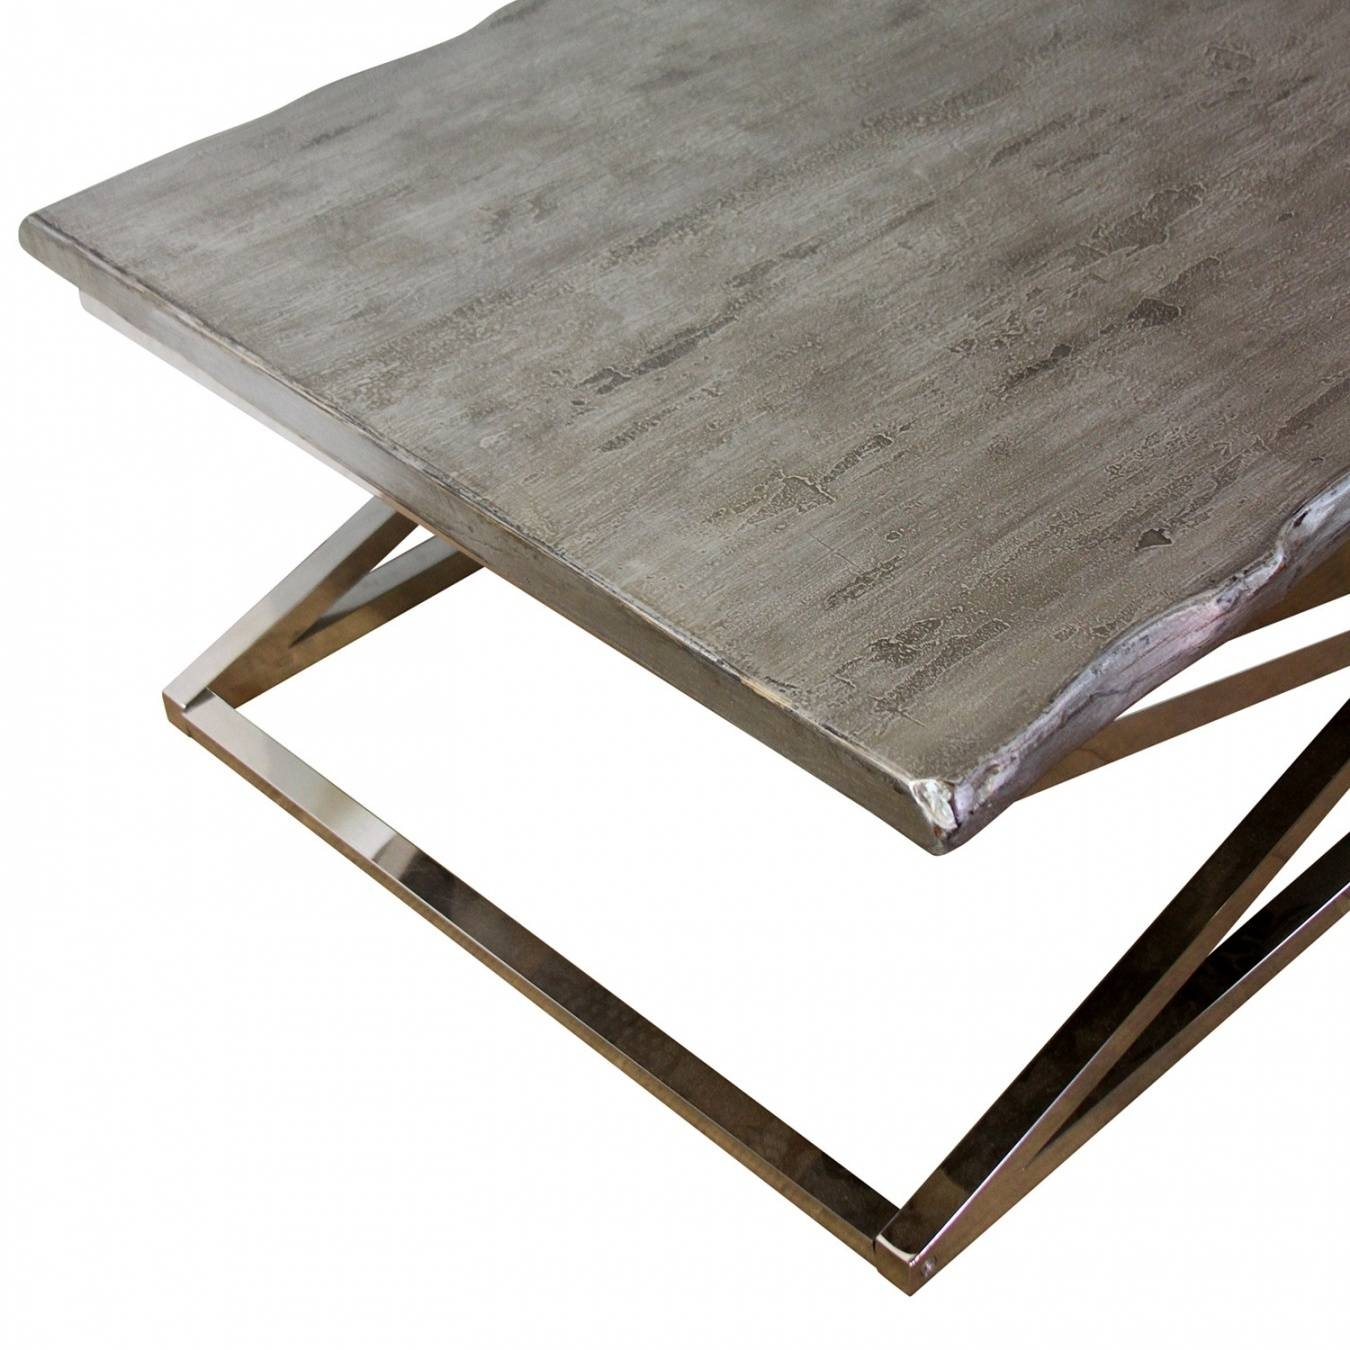 Wood And Chrome Coffee Table – Home Salers With Chrome And Wood Coffee Tables (View 29 of 30)